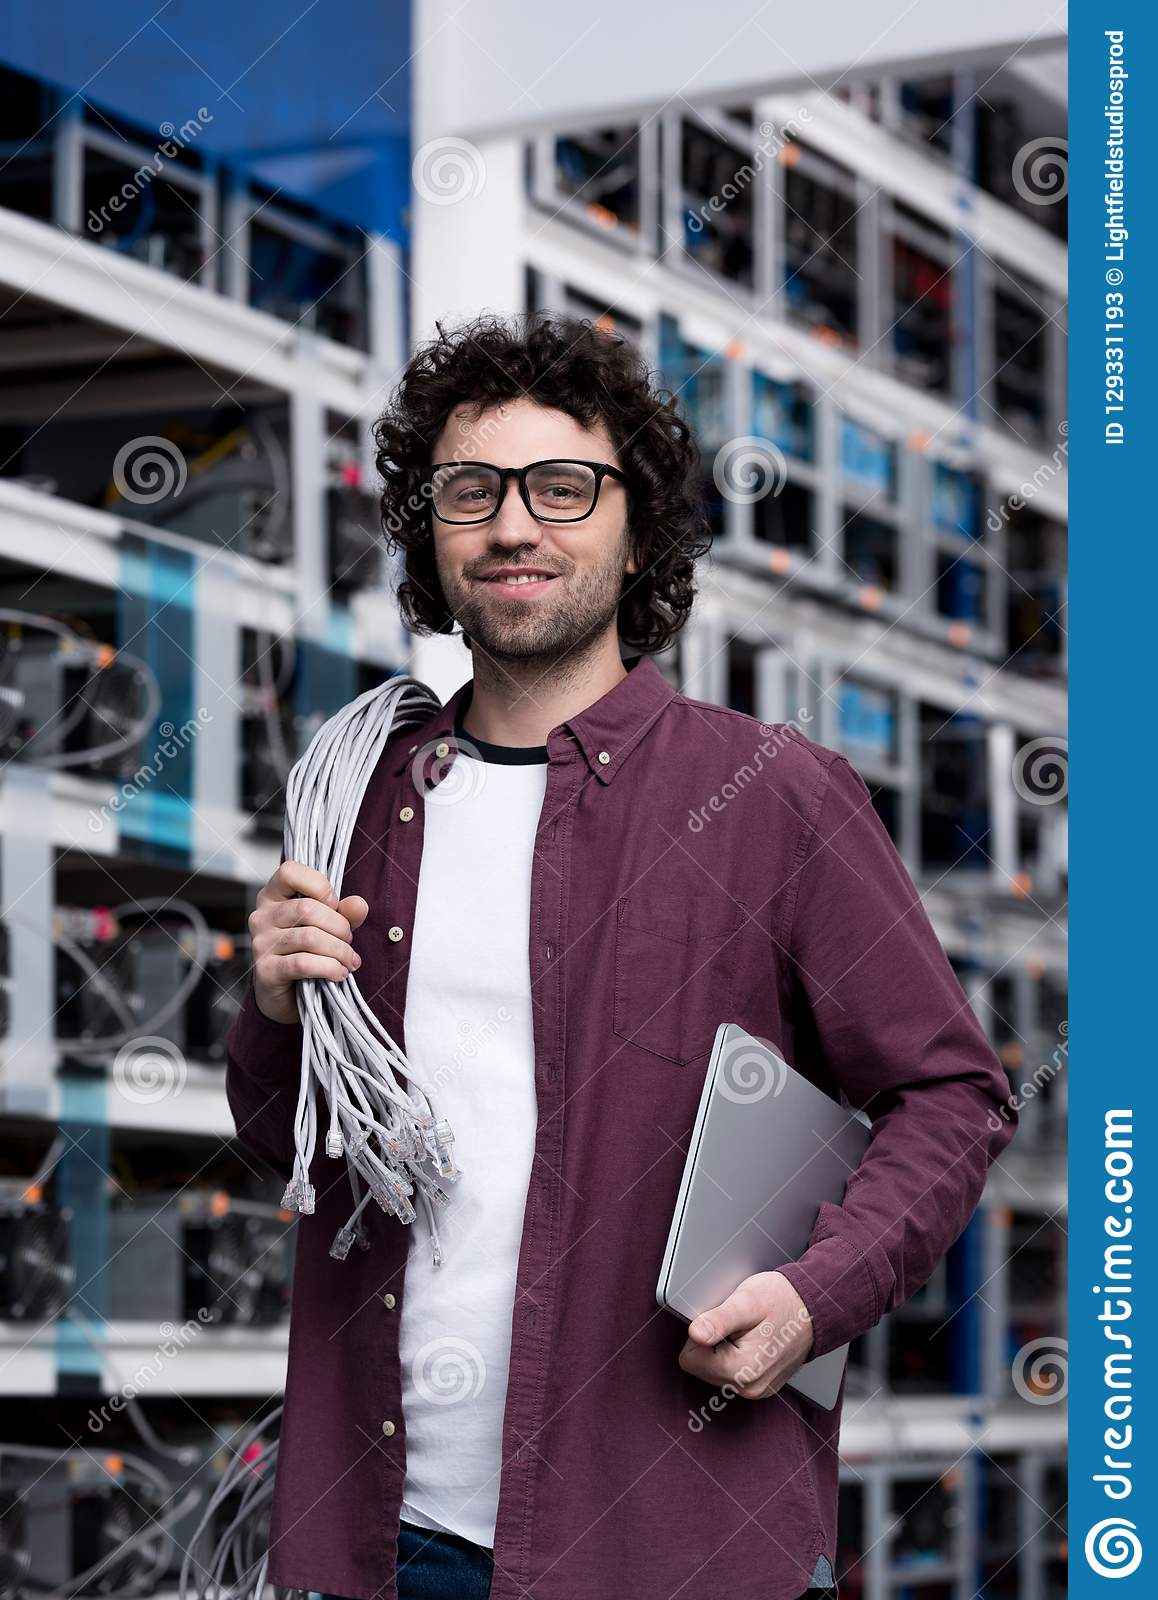 Handsome young computer engineer with laptop and wires working at cryptocurrency mining farm stock photos